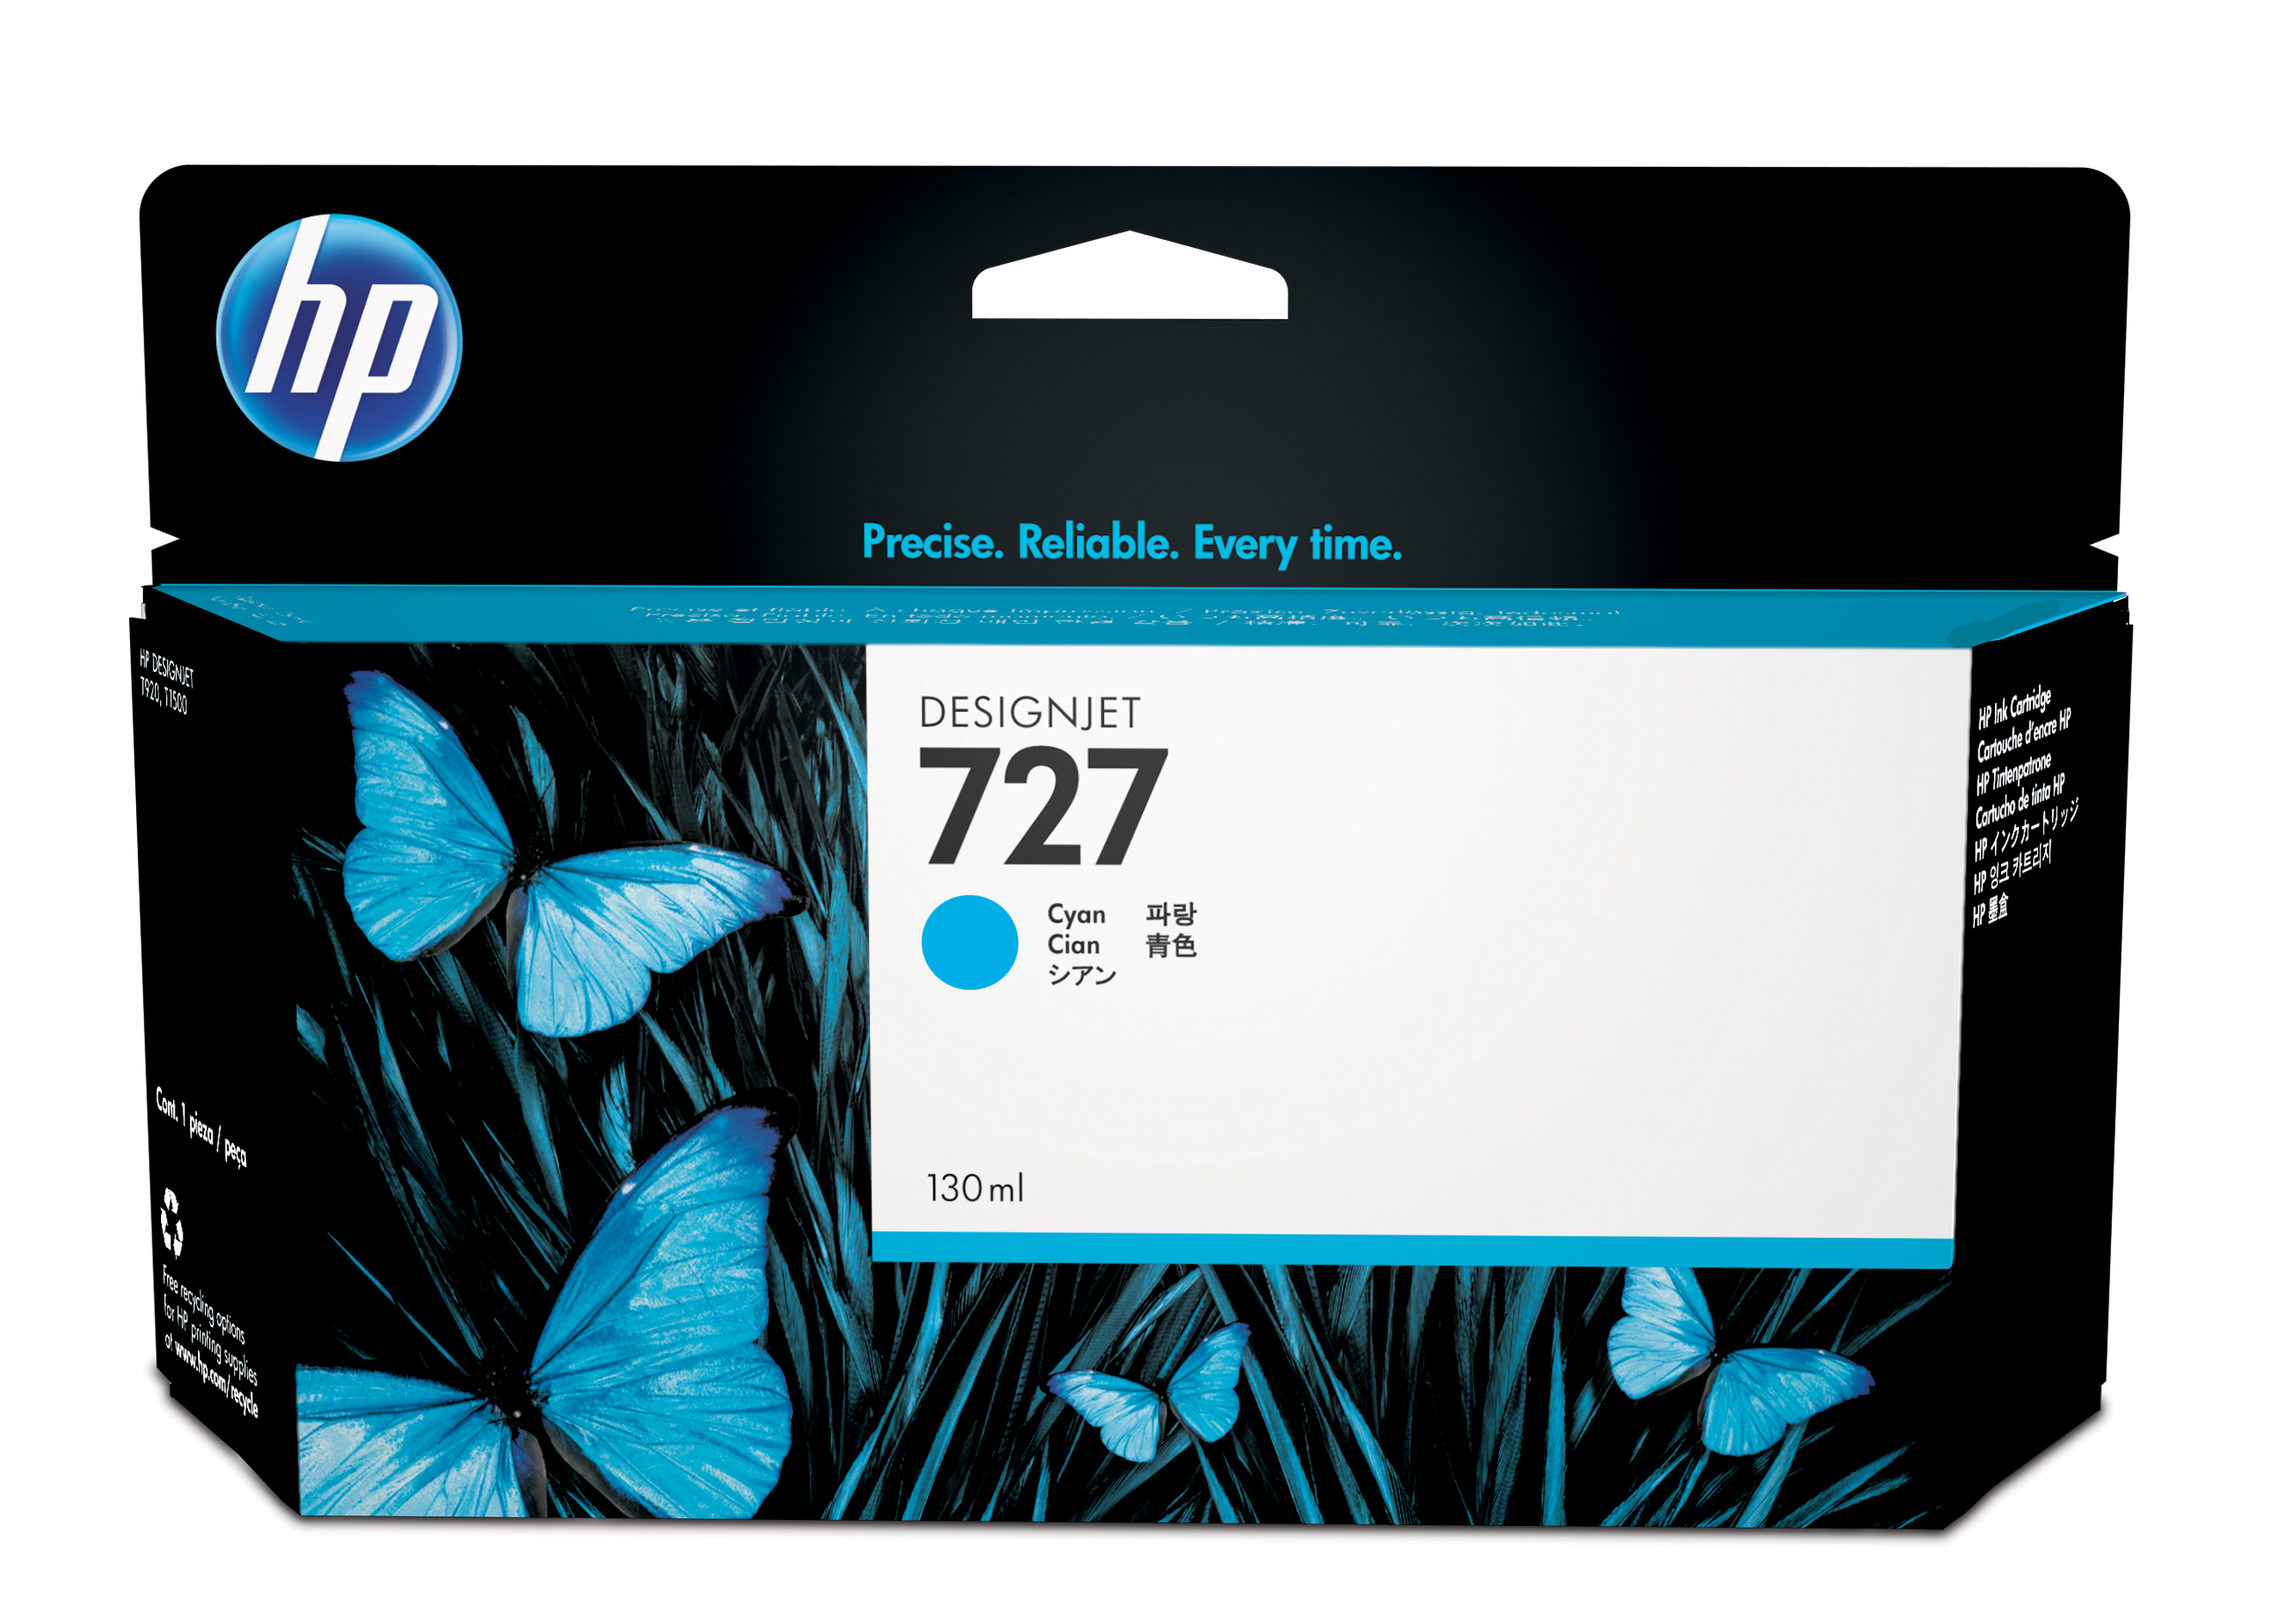 HP 727 Cyan Ink Cartridge B3P19A